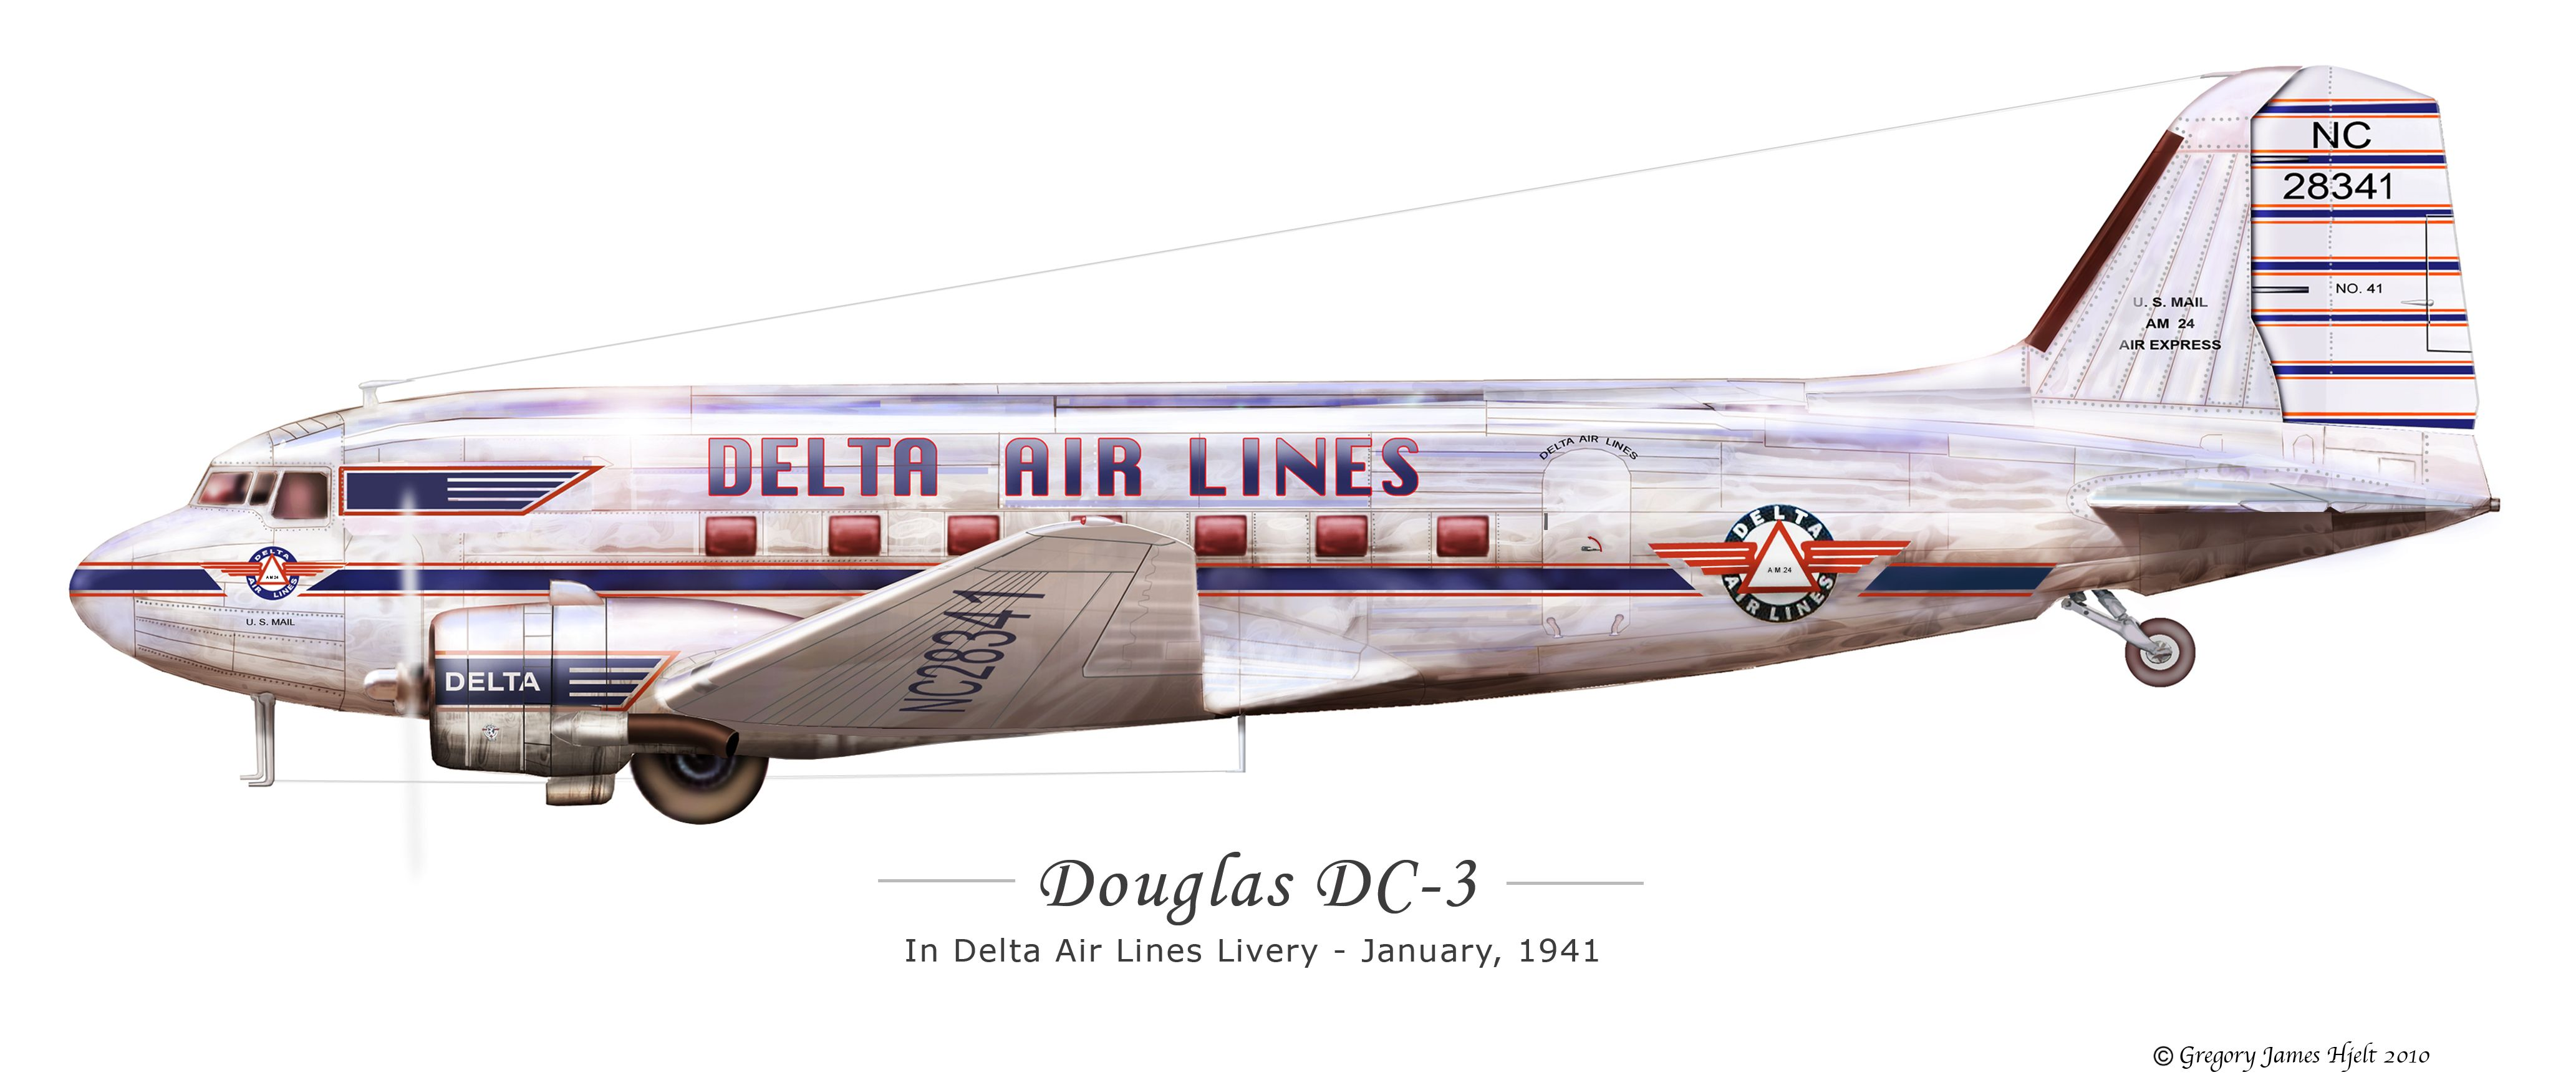 DC-3 Profile | Aviation Art - Vintage Airline | Aircraft, Airplane